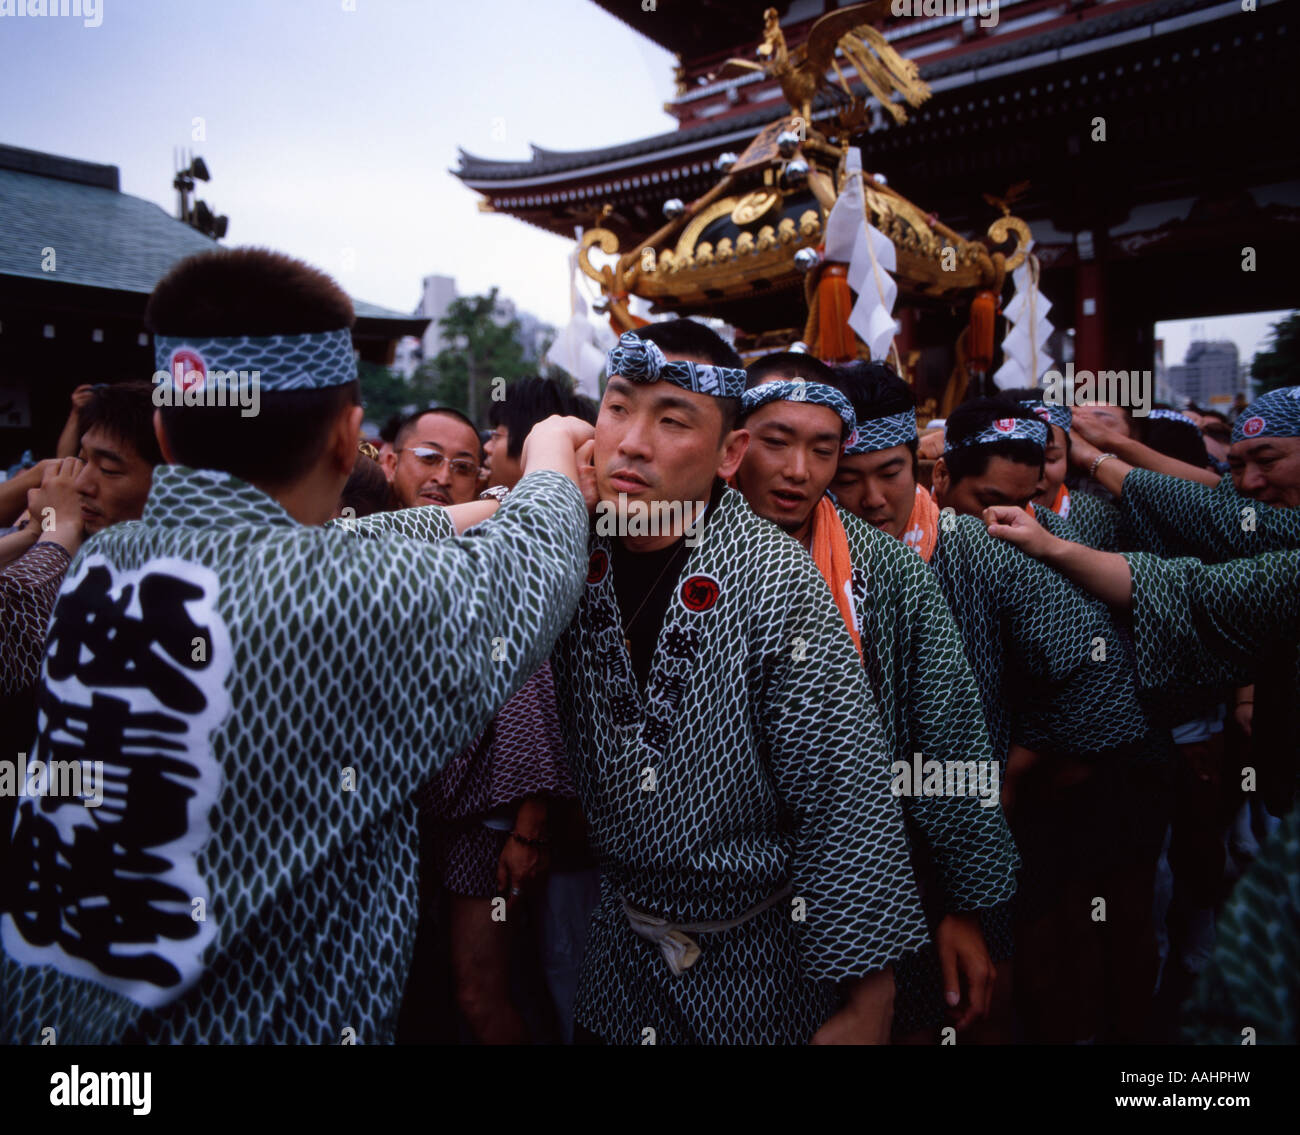 Carrying a portable shrine ( mikoshi ) at Tokyo's Sanja Matsuri held at Senso-ji Temple ( Asakusa Kannon ) - Stock Image